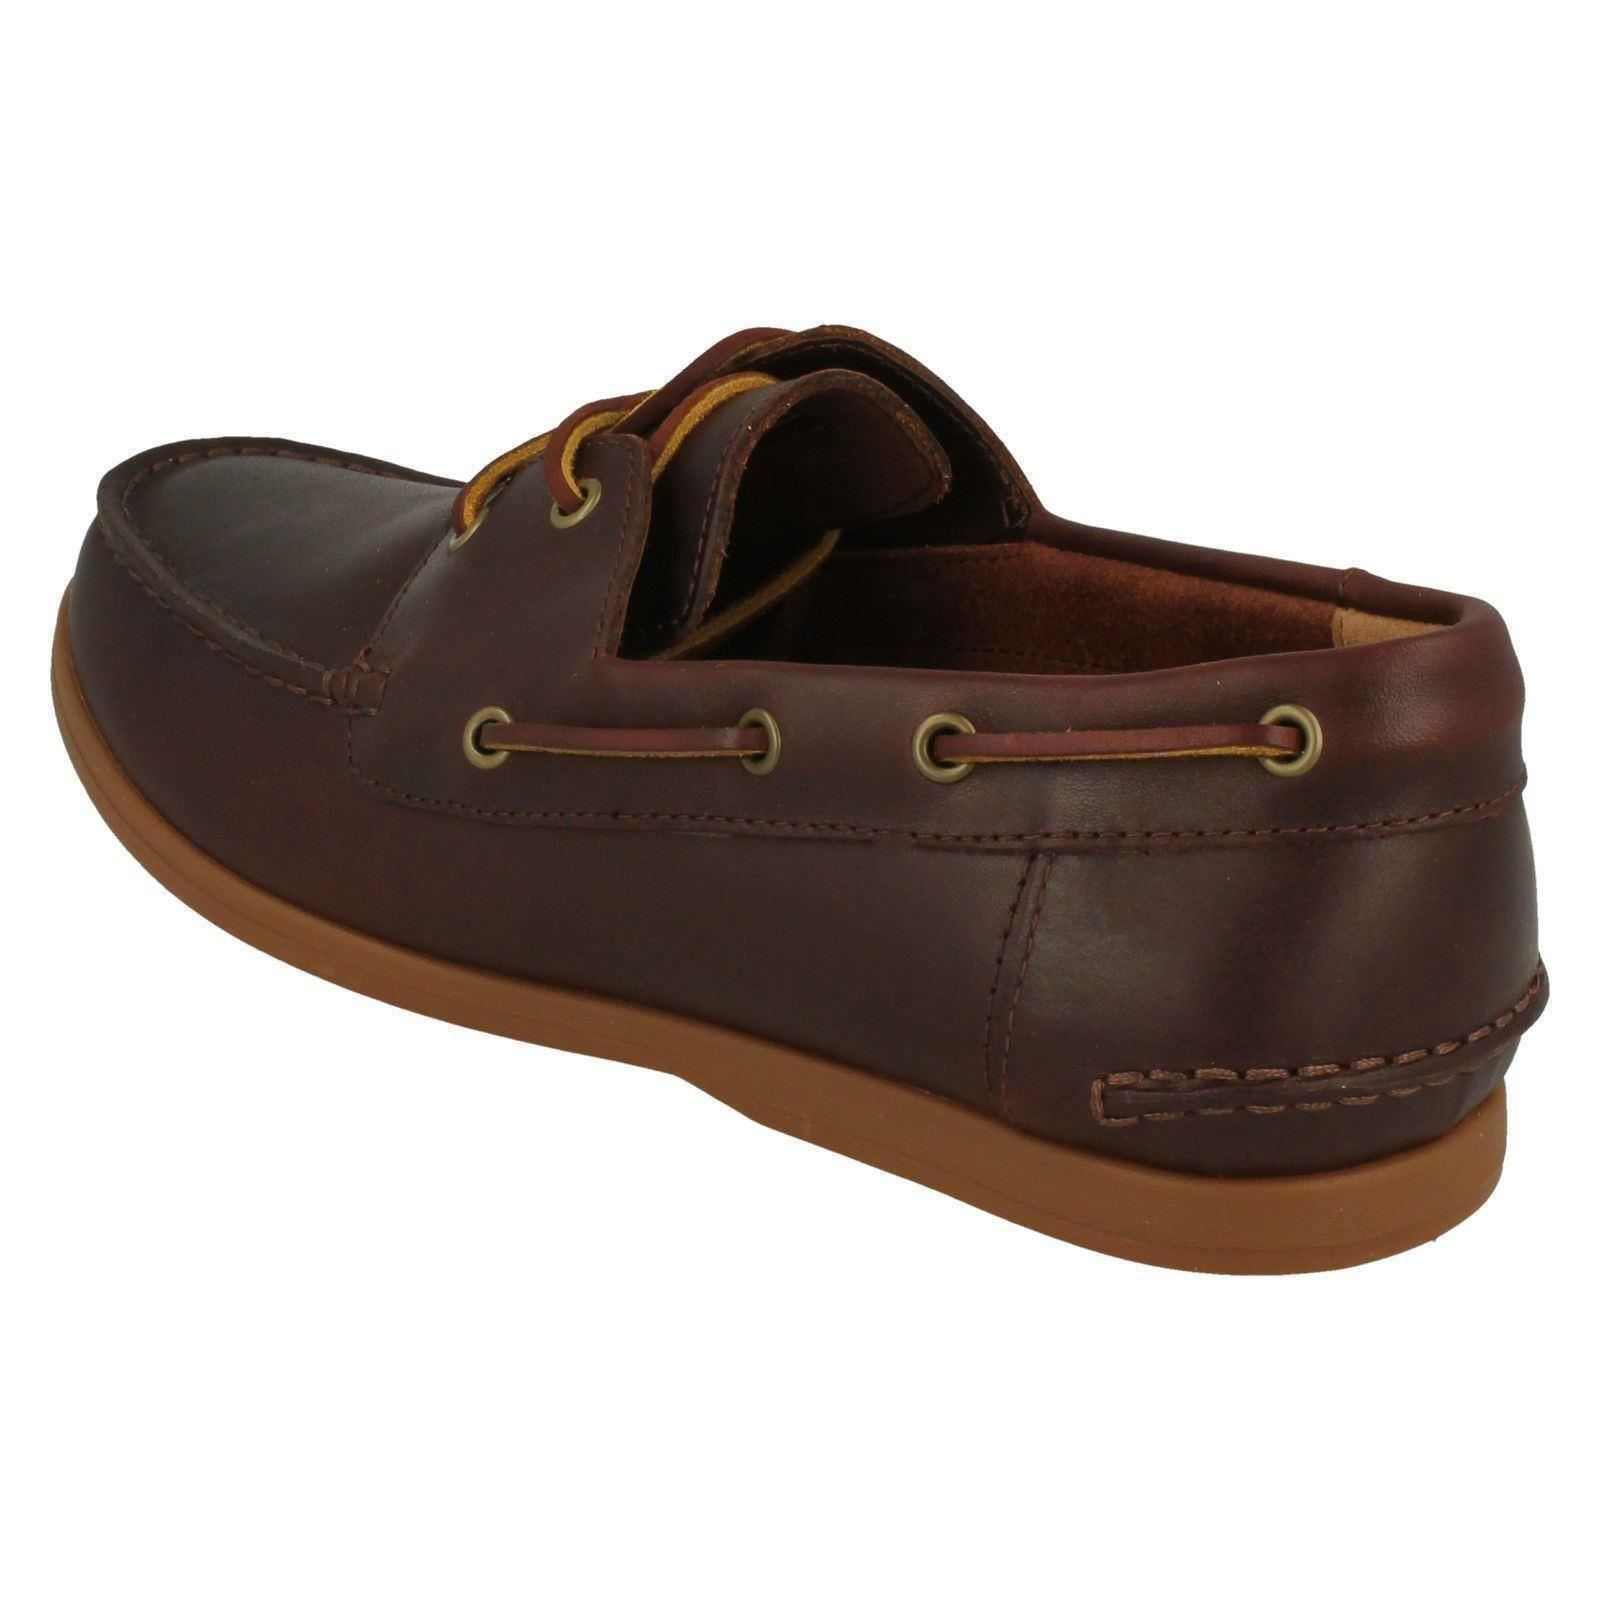 'Mens Clarks' - Lace Up Boat Shoes - Clarks' Morven Sail 676f7f